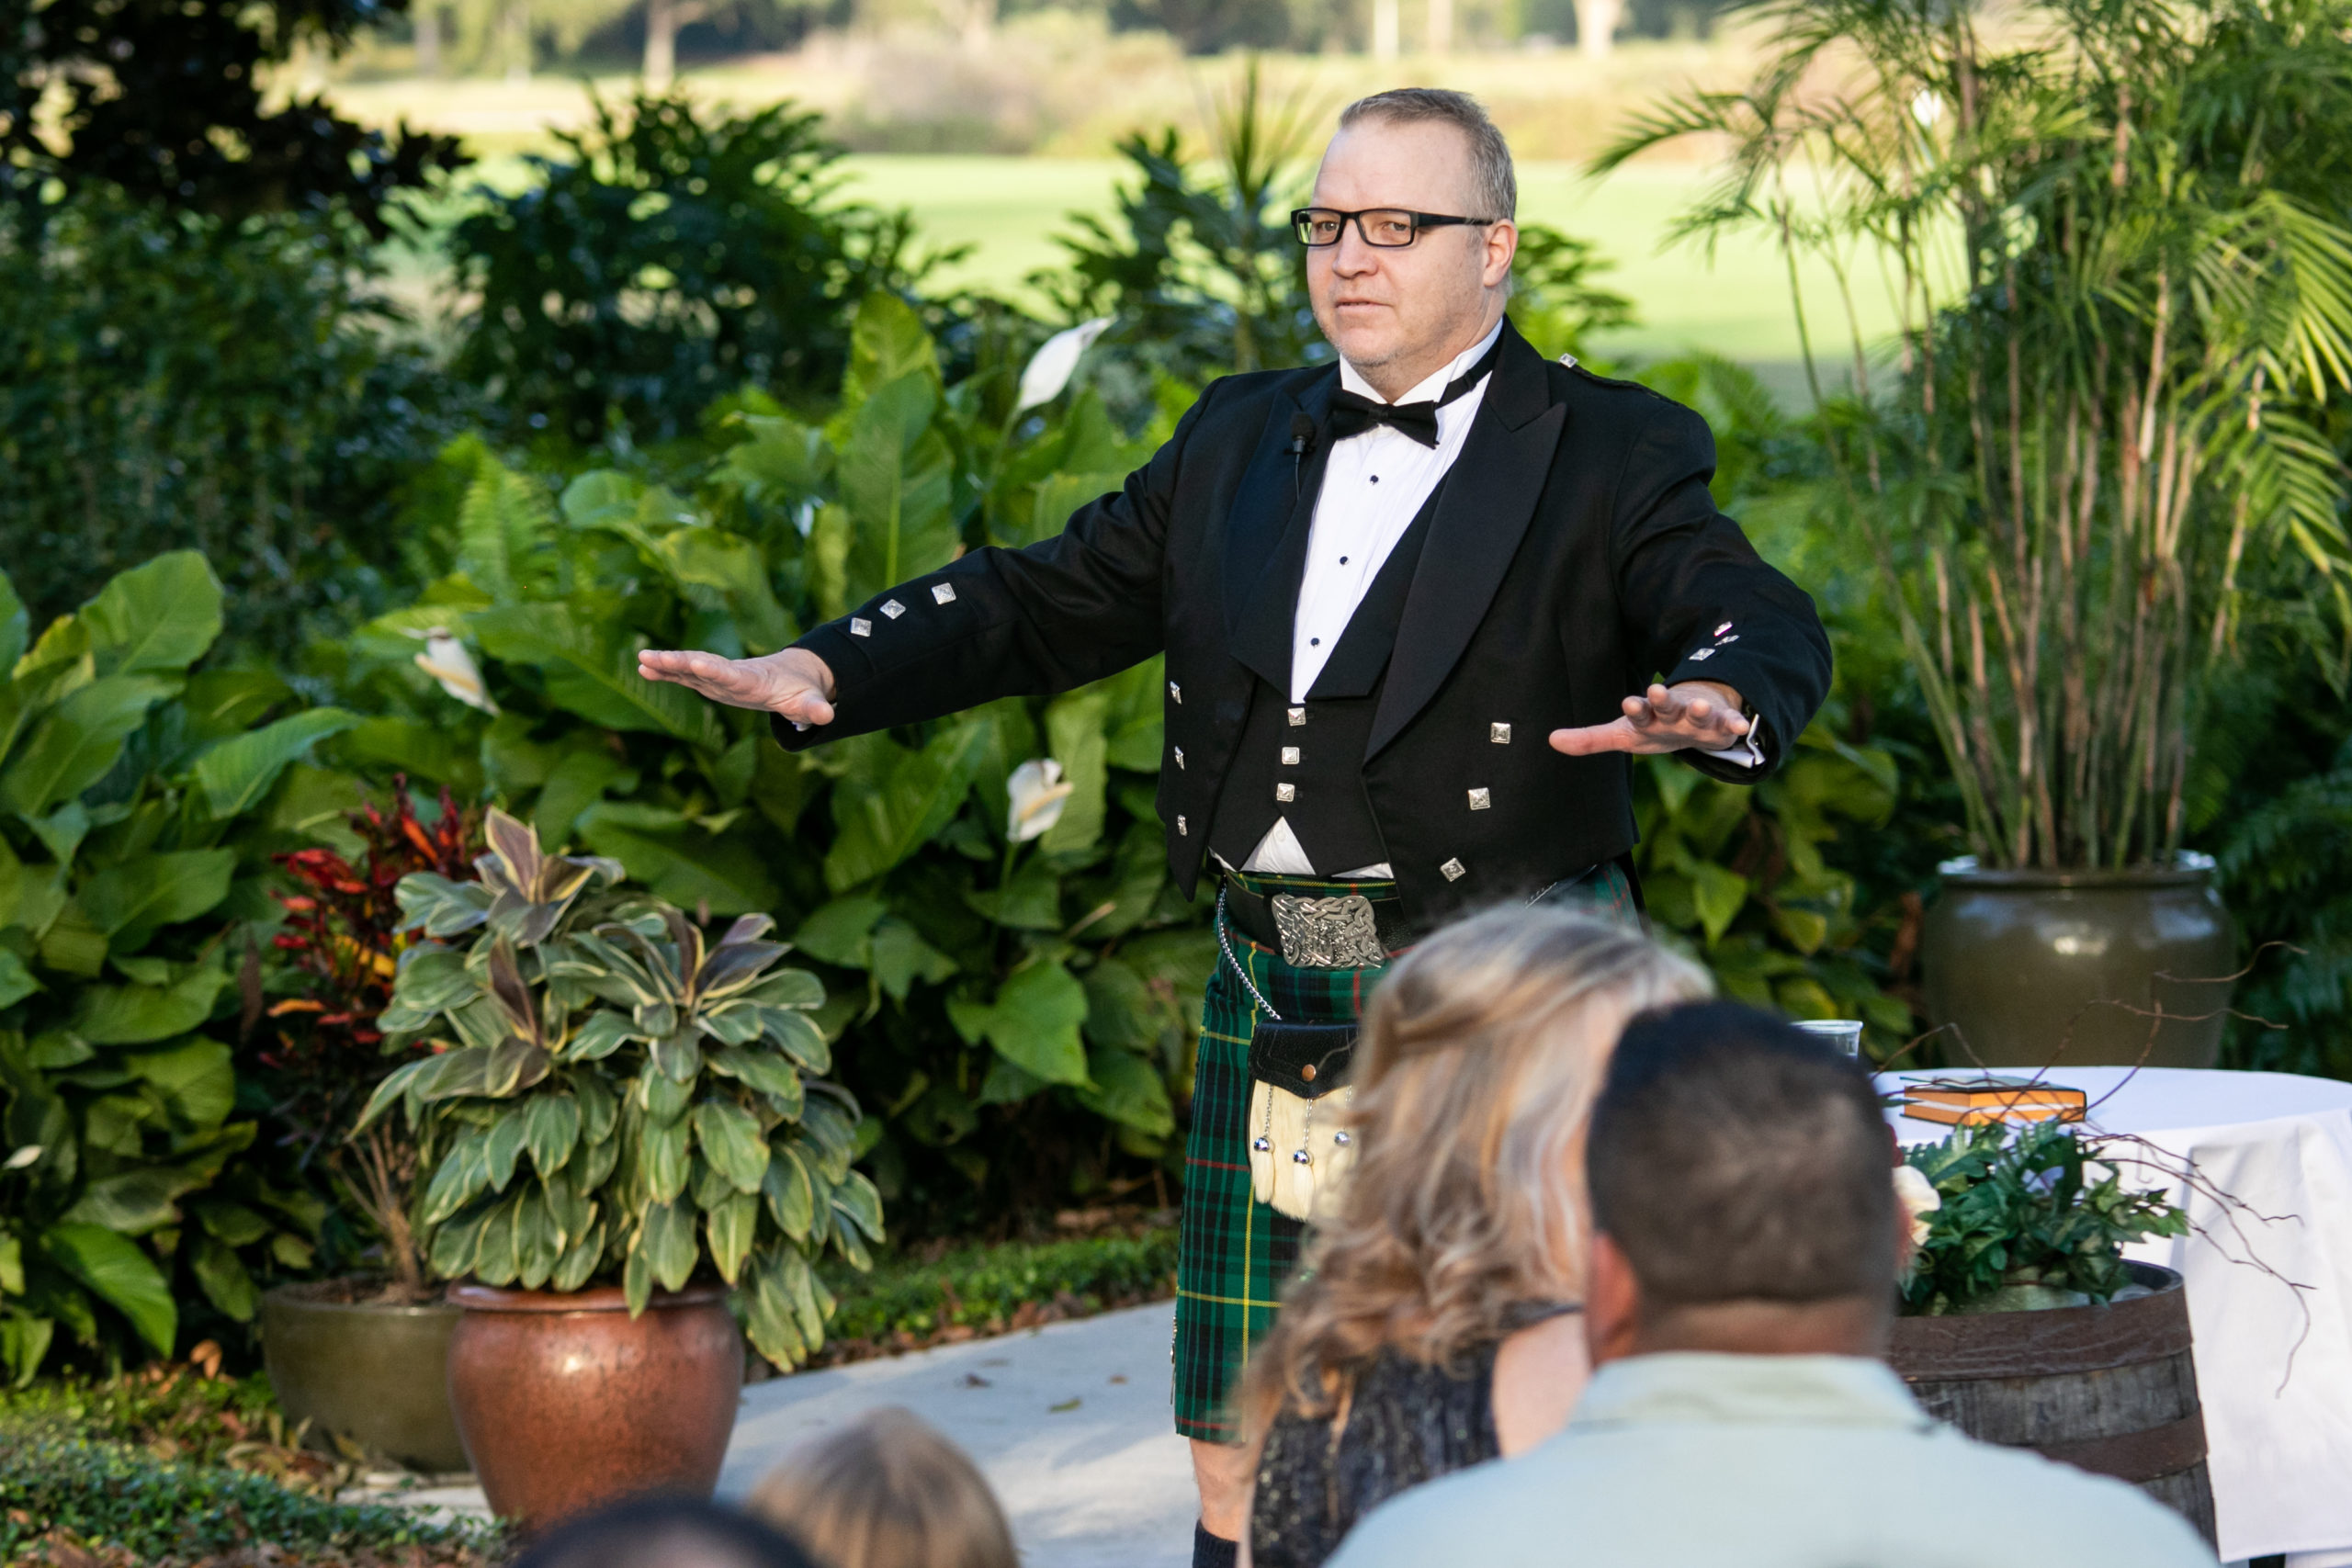 officiant in kilt telling wedding guests to be seated for vineyard inspired wedding